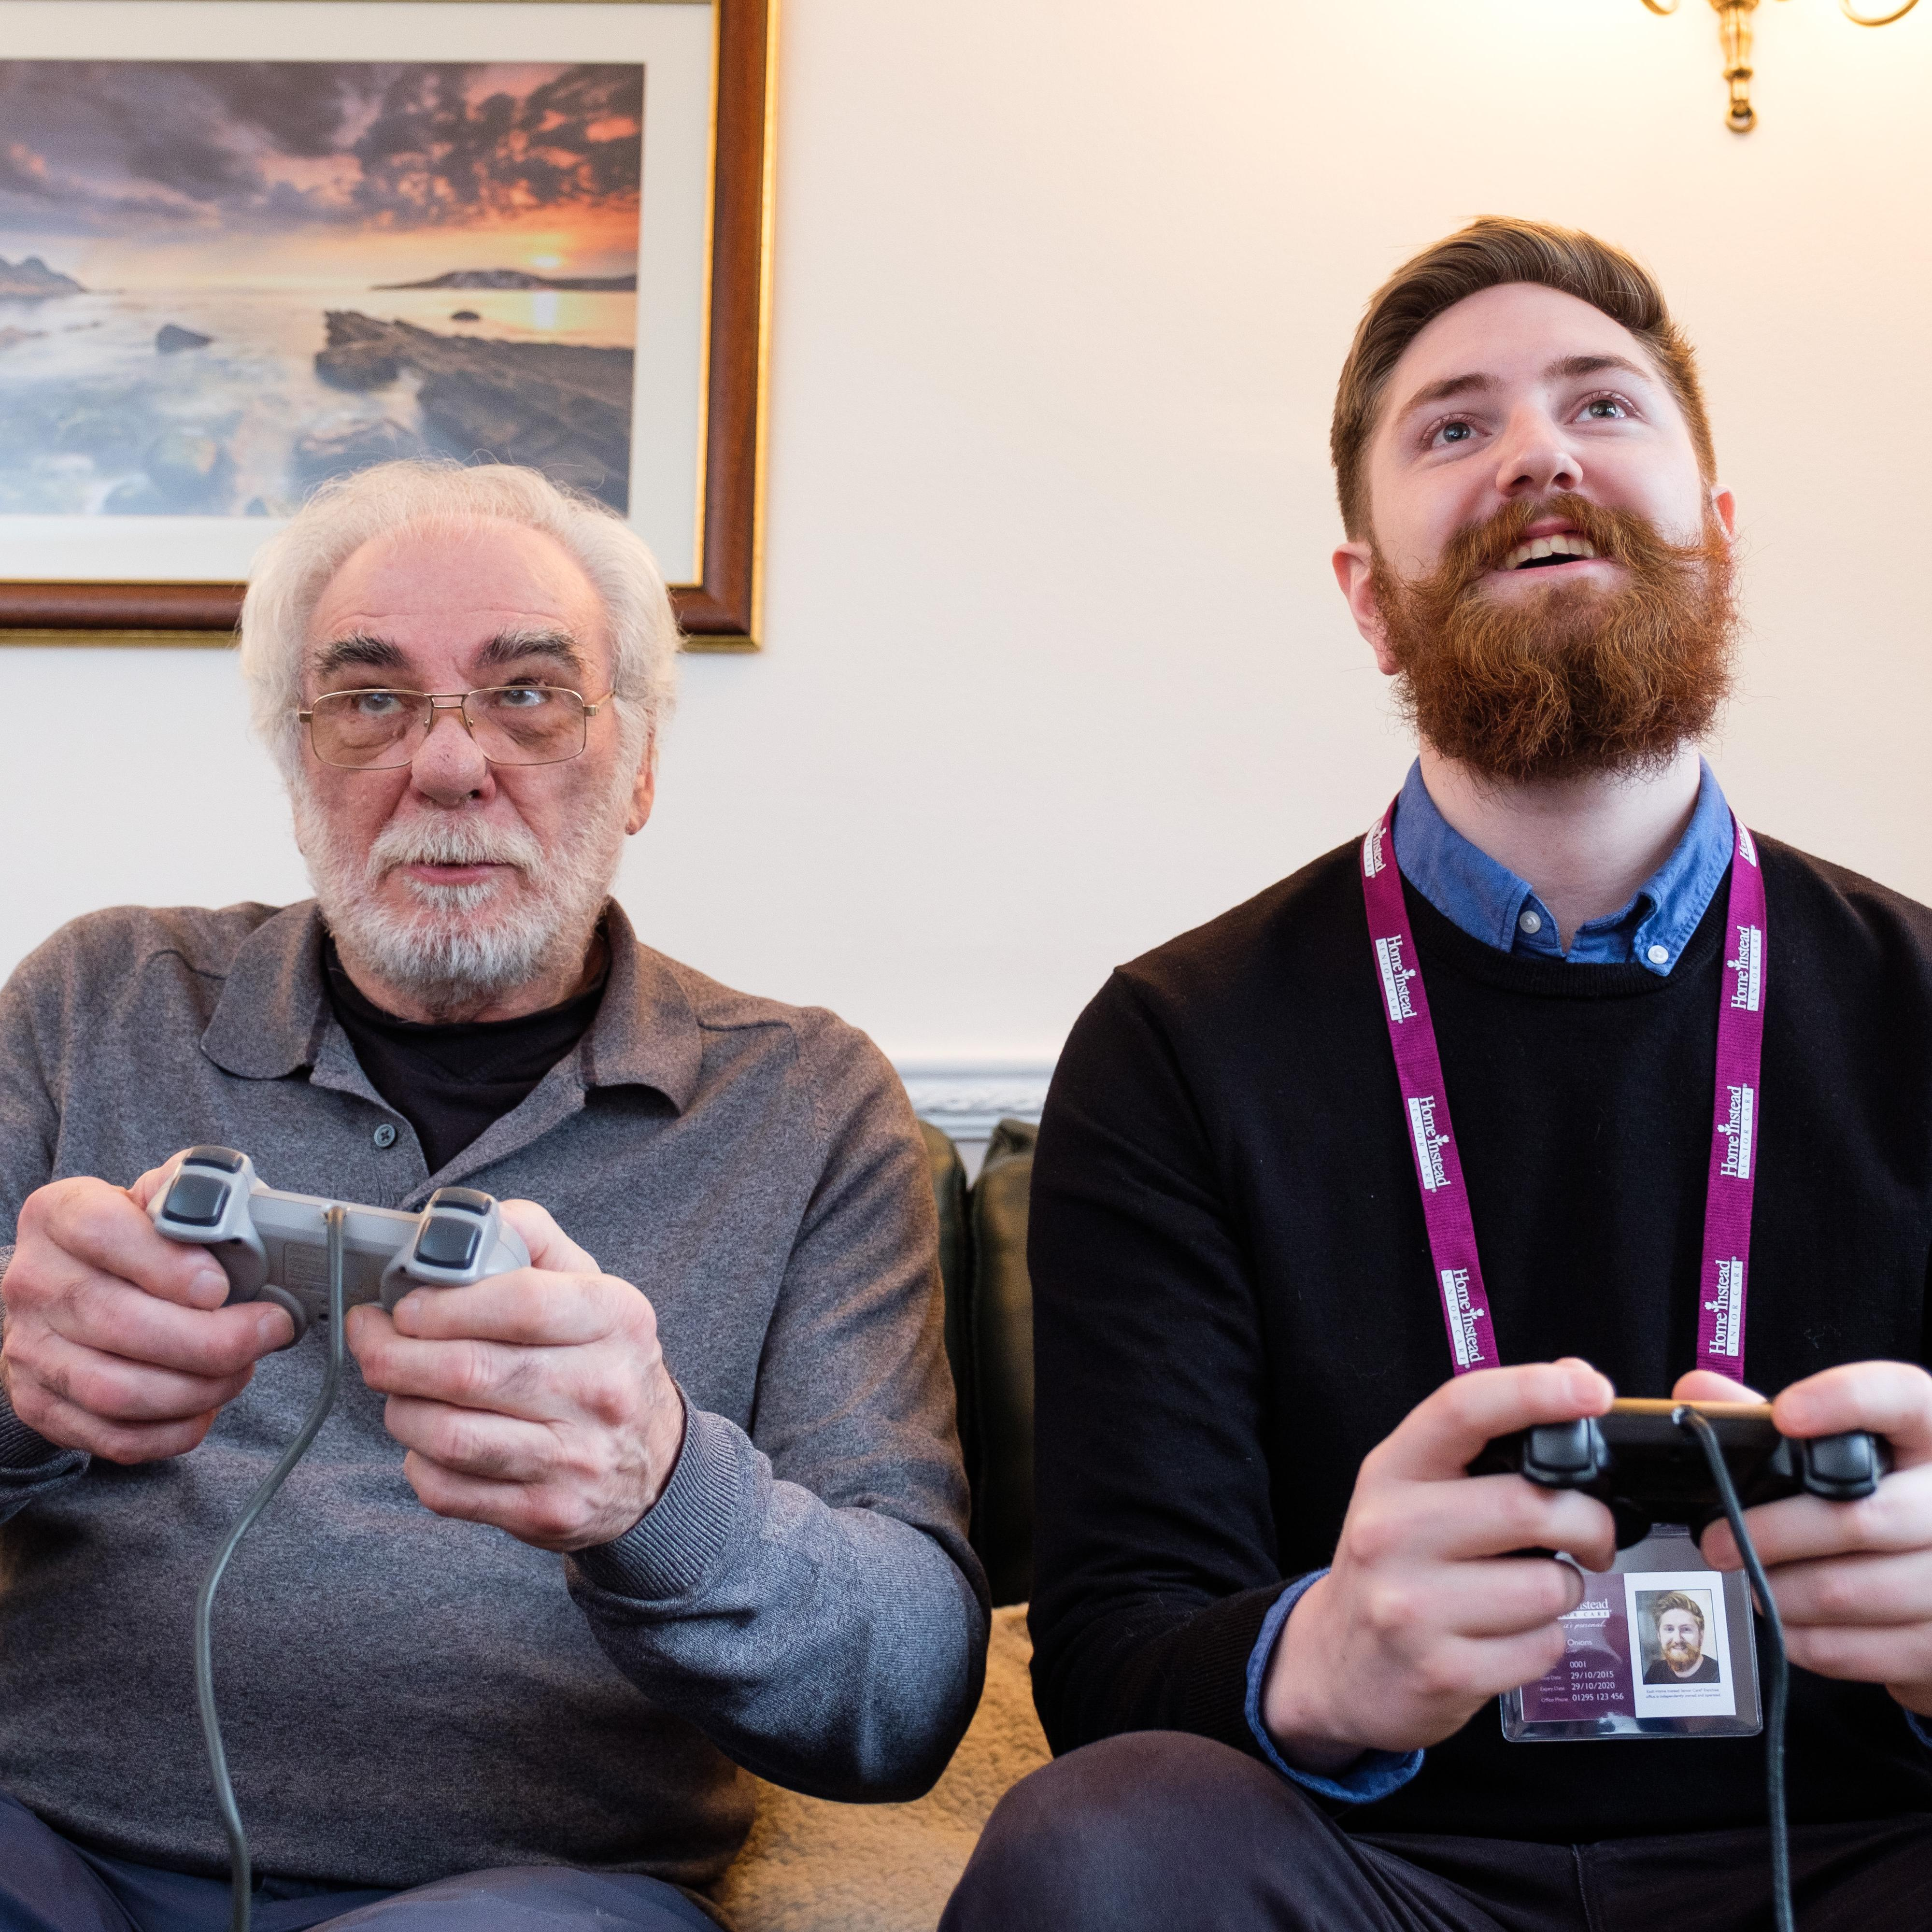 Carer and client play on xbox